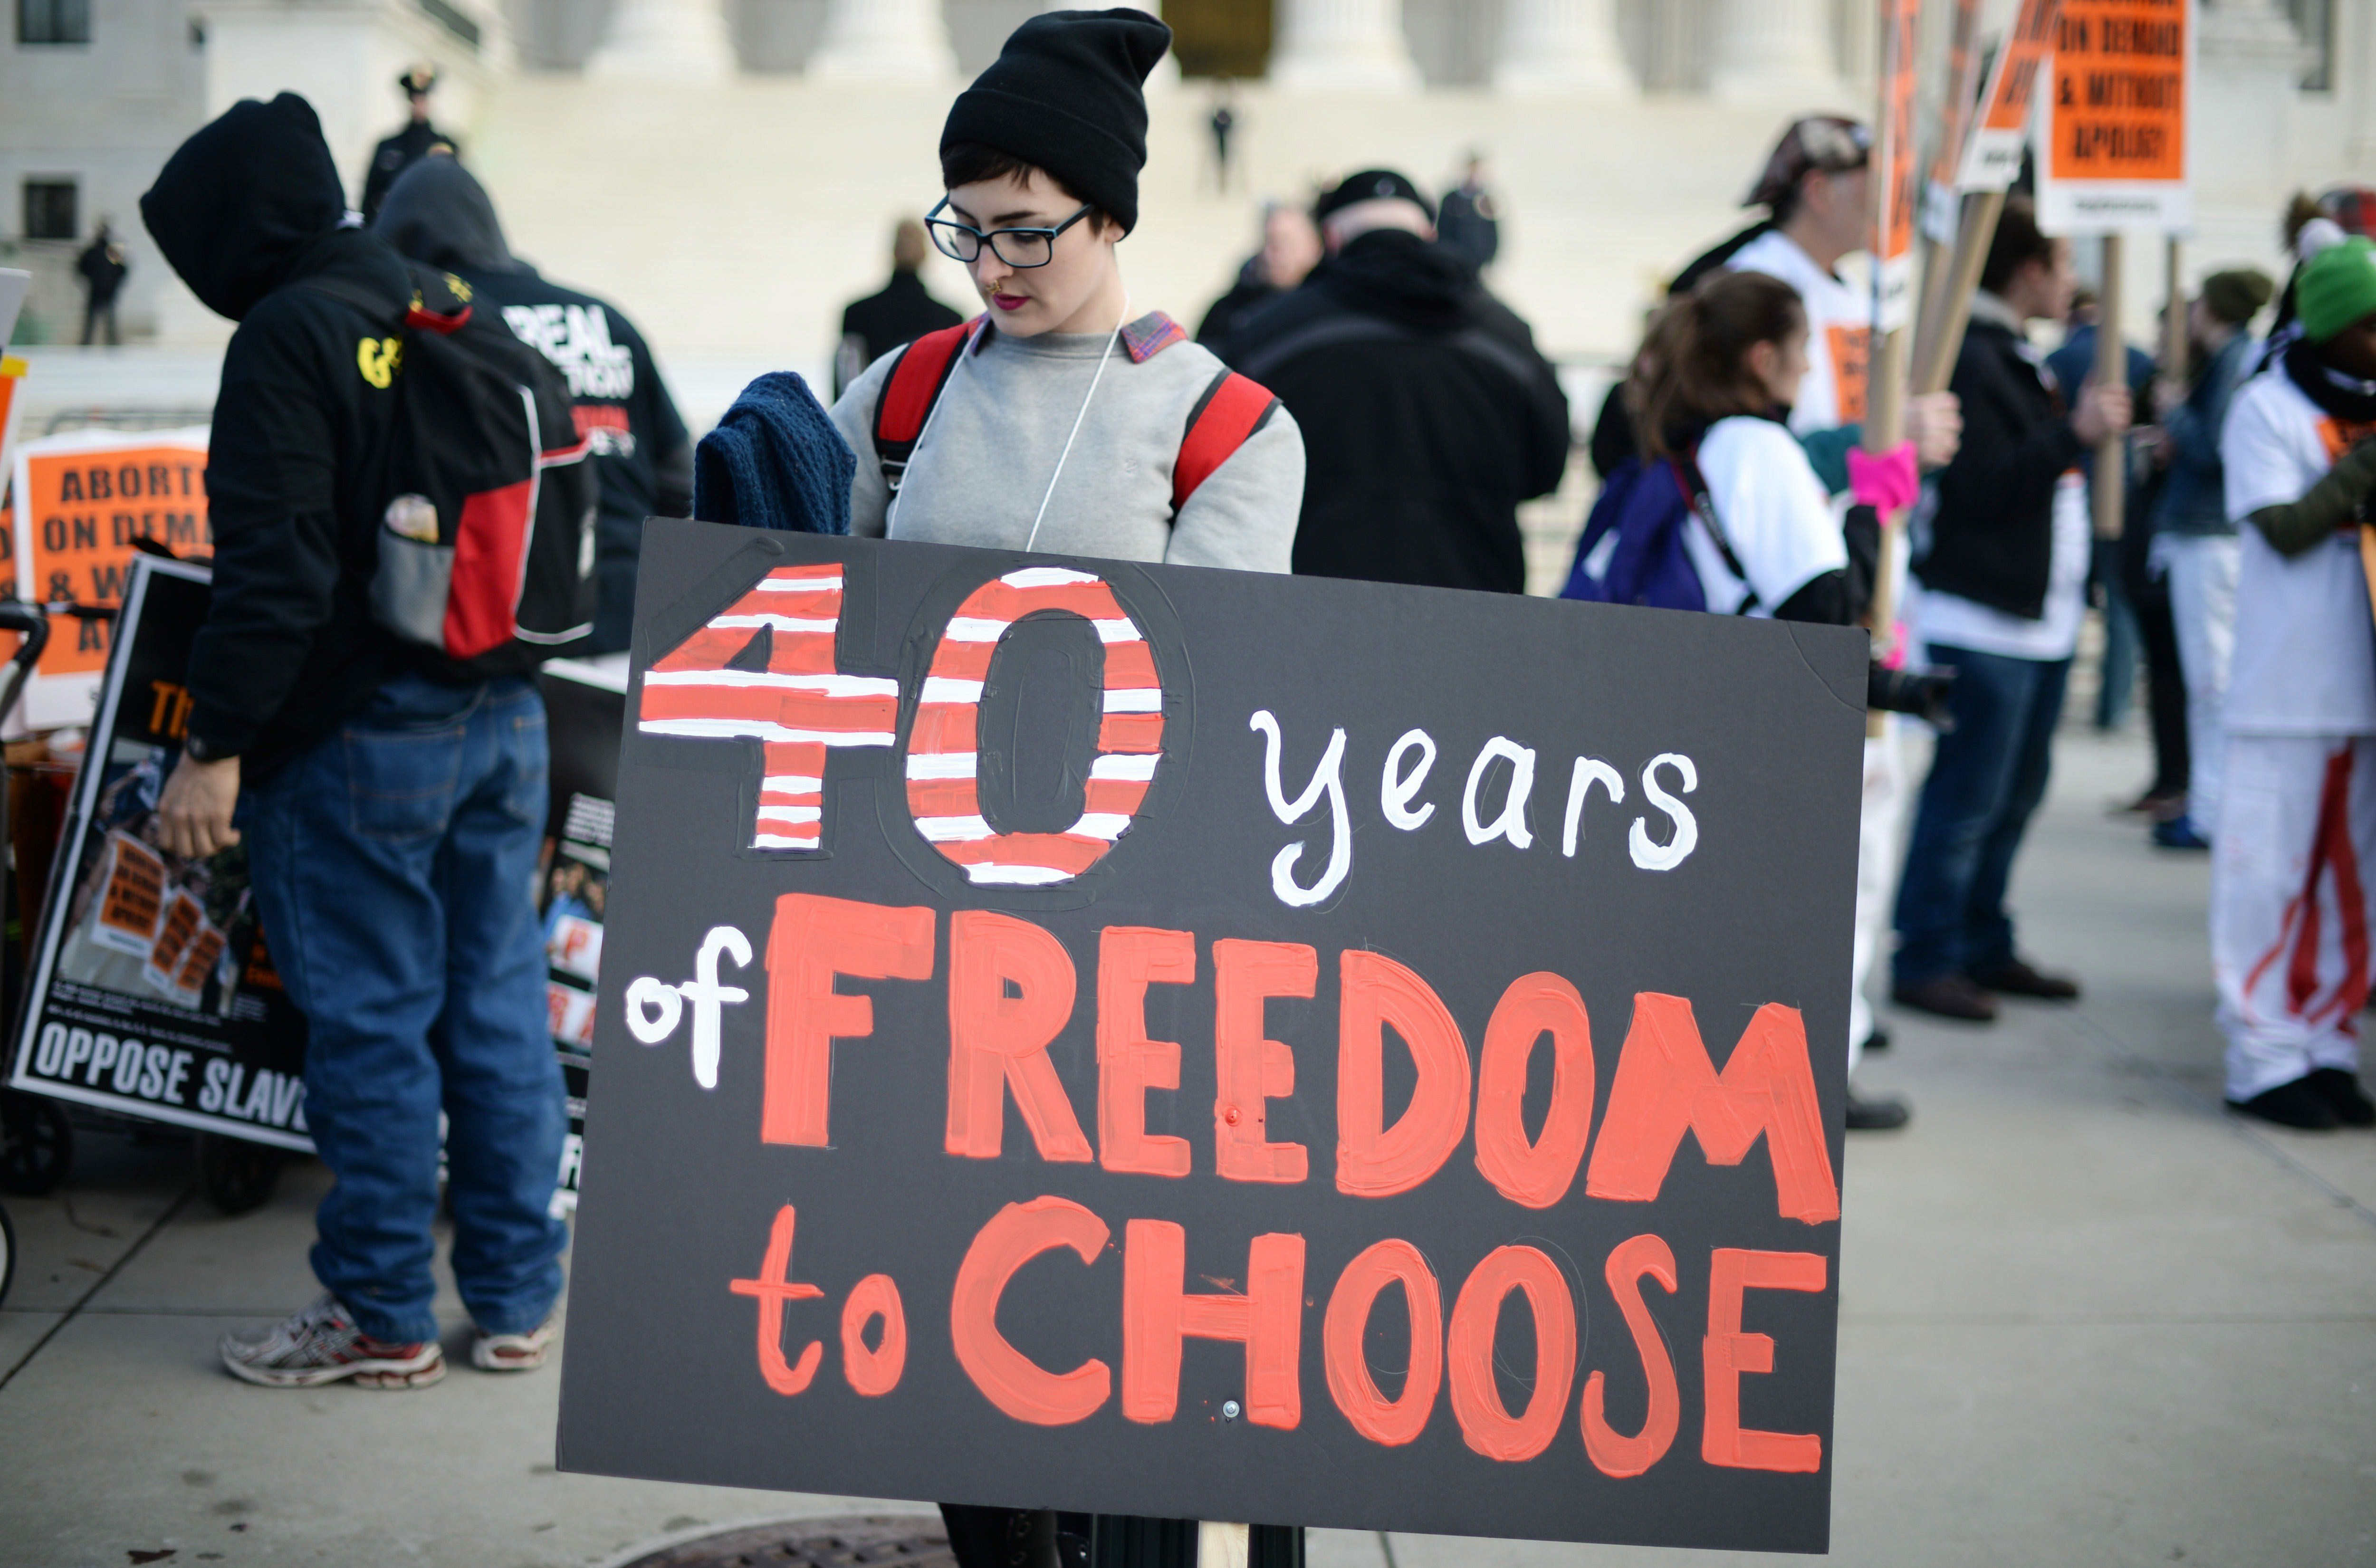 A pro-choice activists holds a placard in front of the US Supreme Court in Washington, DC, January 22, 2015, as she and others await the pro-choice activists with the March For Life. Tens of thousands of Americans who oppose abortion are in Washington for the annual March for Life, marking the 42nd anniversary of the Supreme Court's Roe v. Wade decision.          AFP PHOTO/JIM WATSON        (Photo credit should read JIM WATSON/AFP/Getty Images)